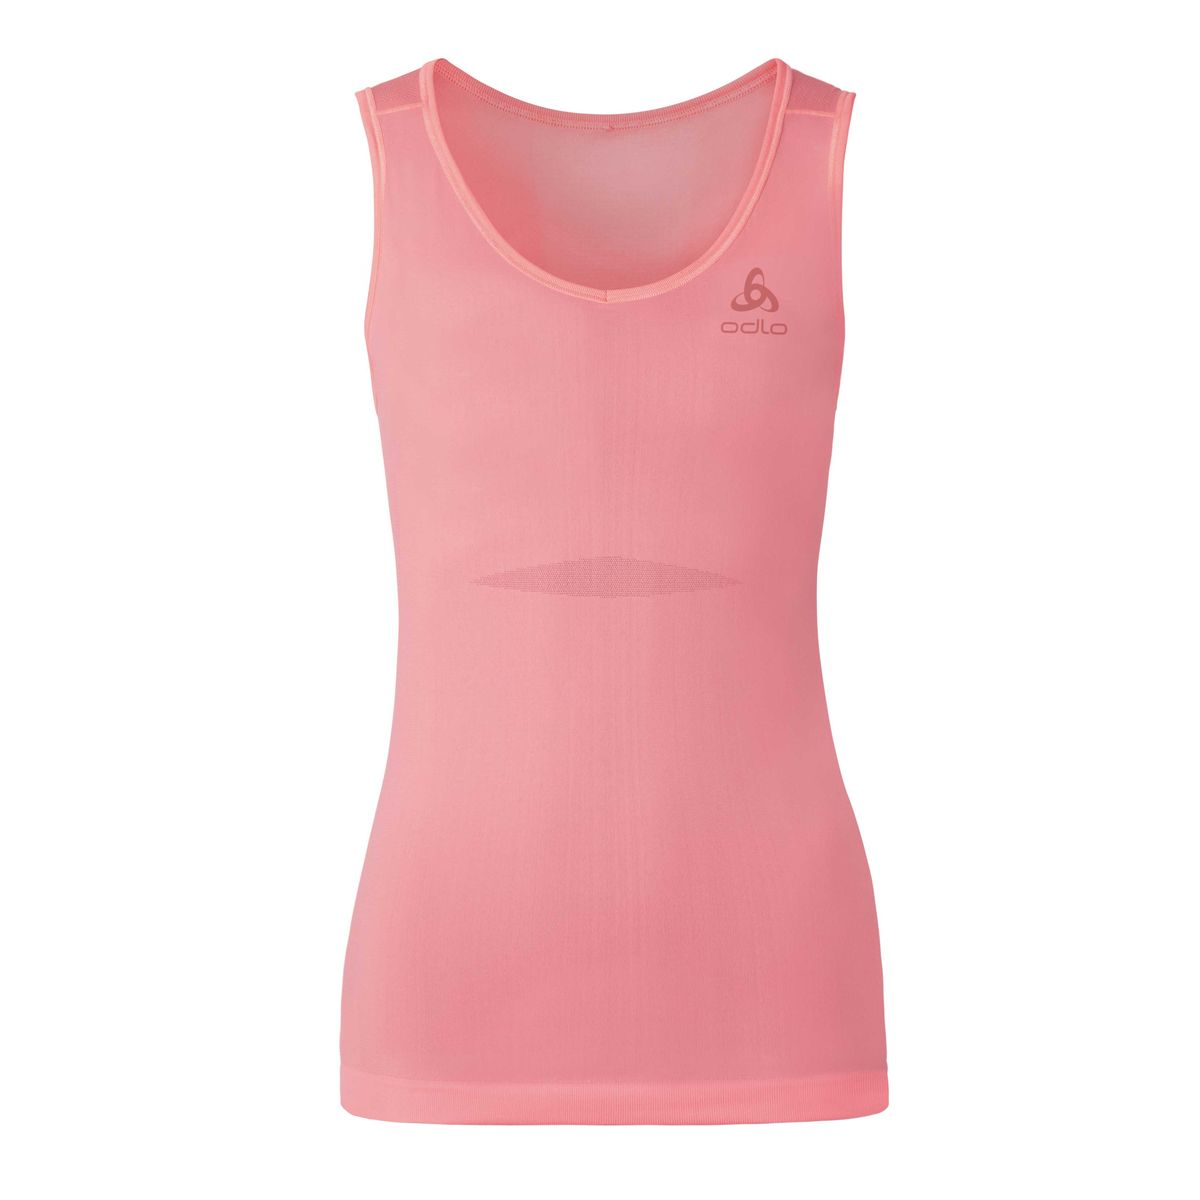 odlo EVOLUTION X-LIGHT singlet for women | Vests